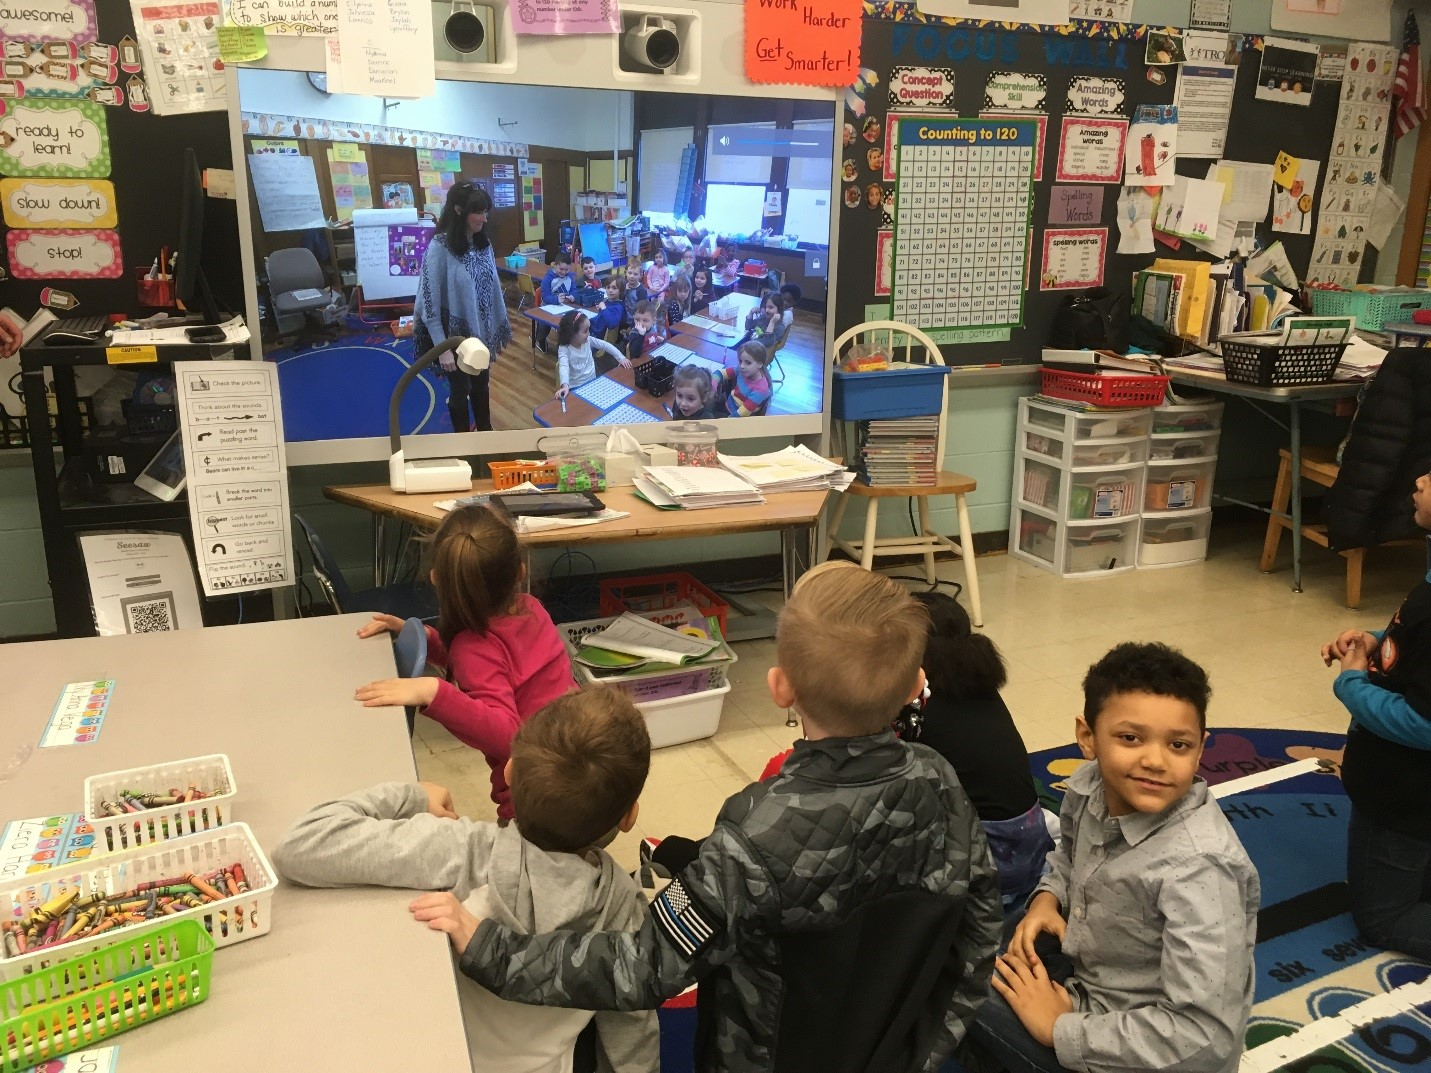 Students connecting with another classroom through video-conferencing